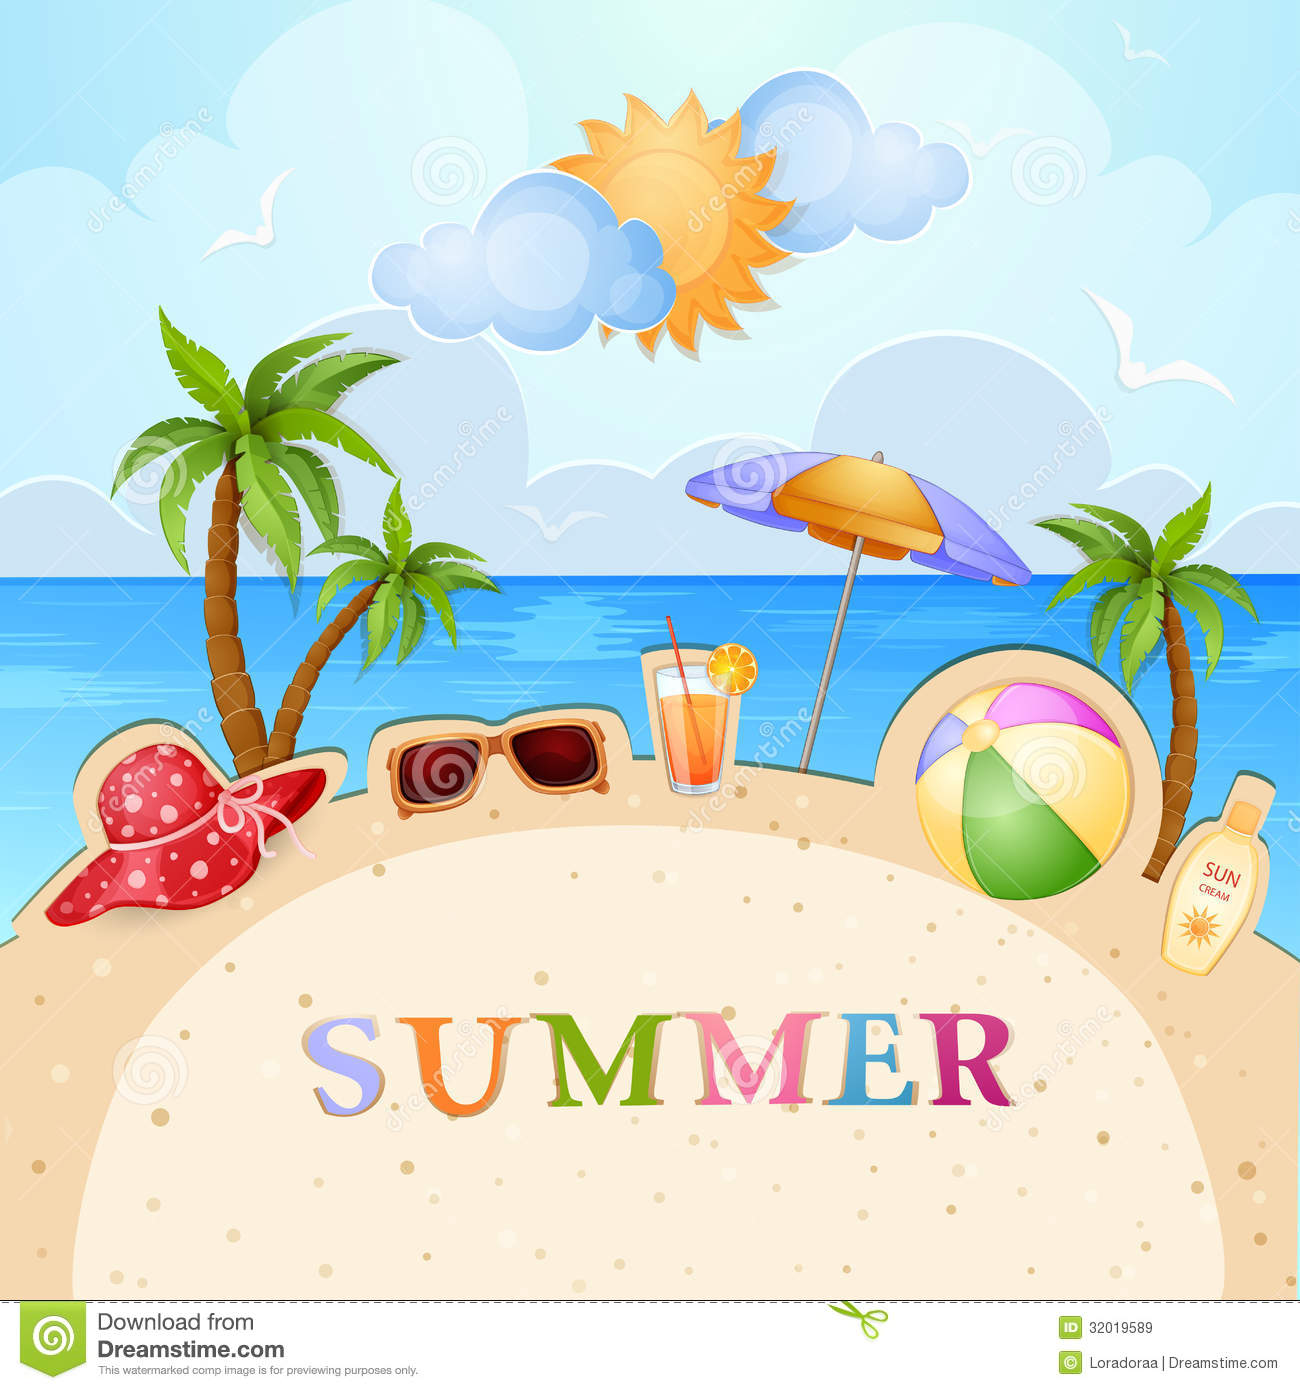 clipart summer holiday images - photo #40